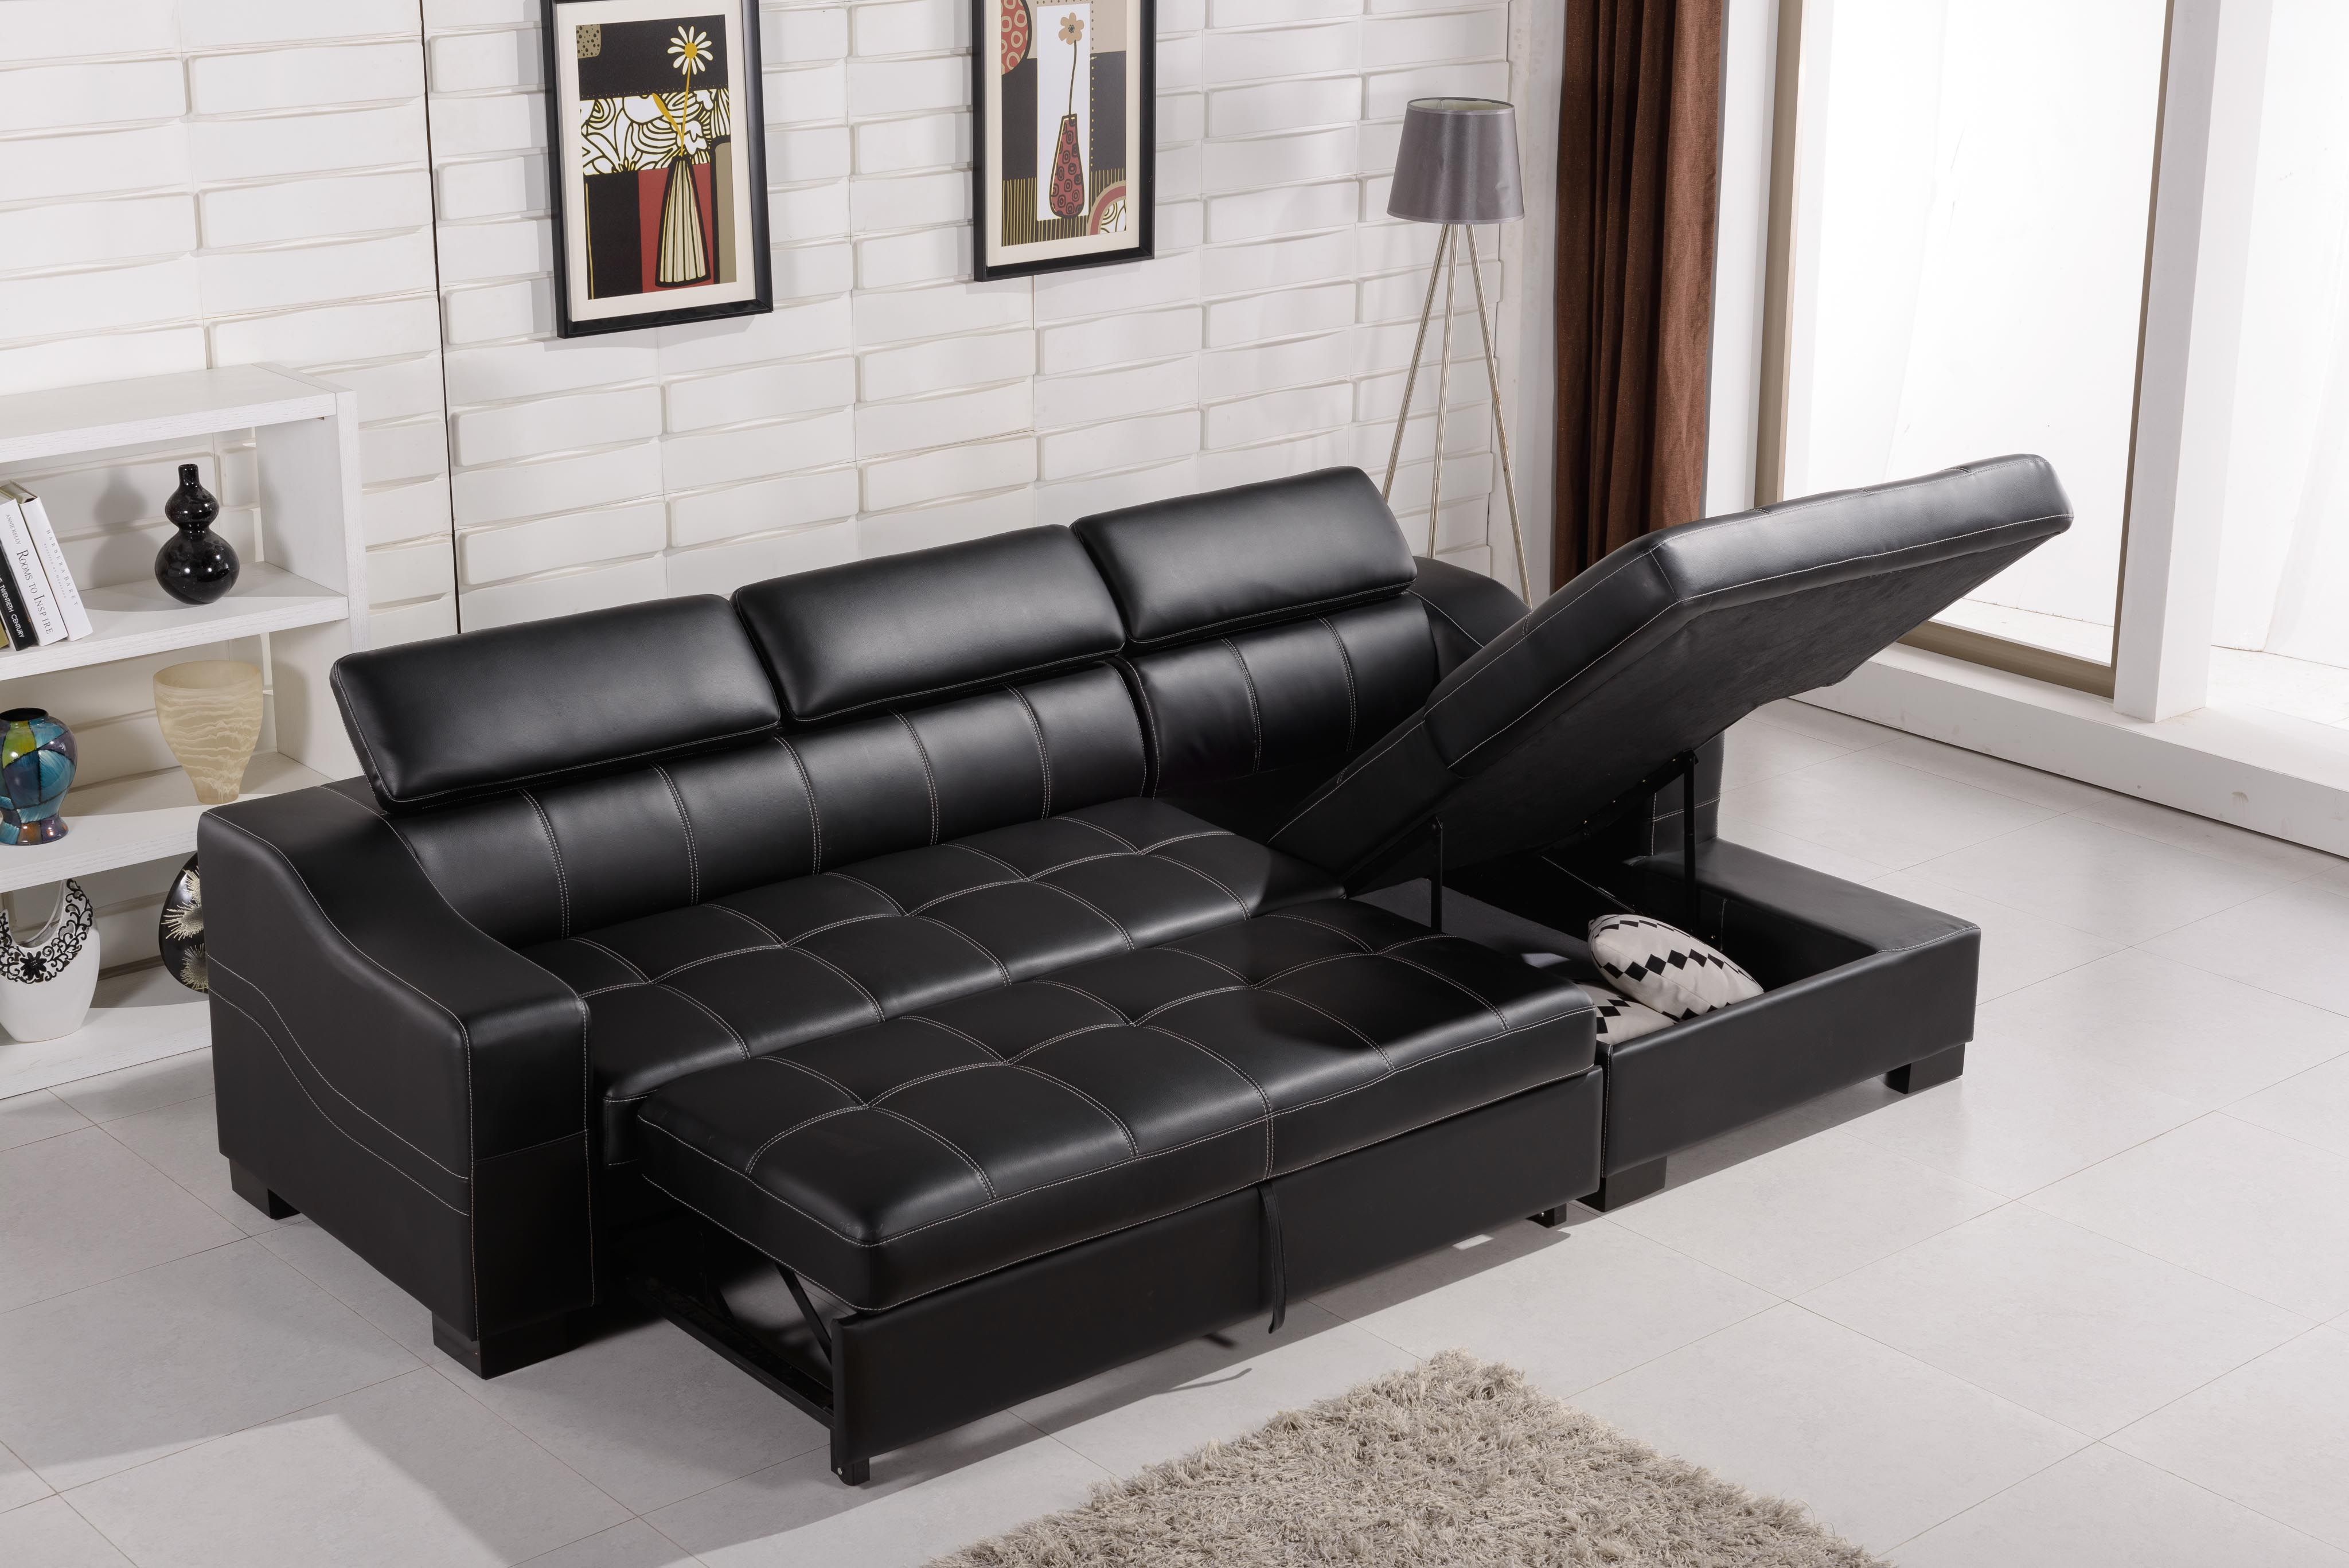 Sofa Beds With Storage Compact Furniture Pieces For Today S Small Living Space Black Leather Sofa Bed Leather Sofa Bed Corner Sofa Bed With Storage